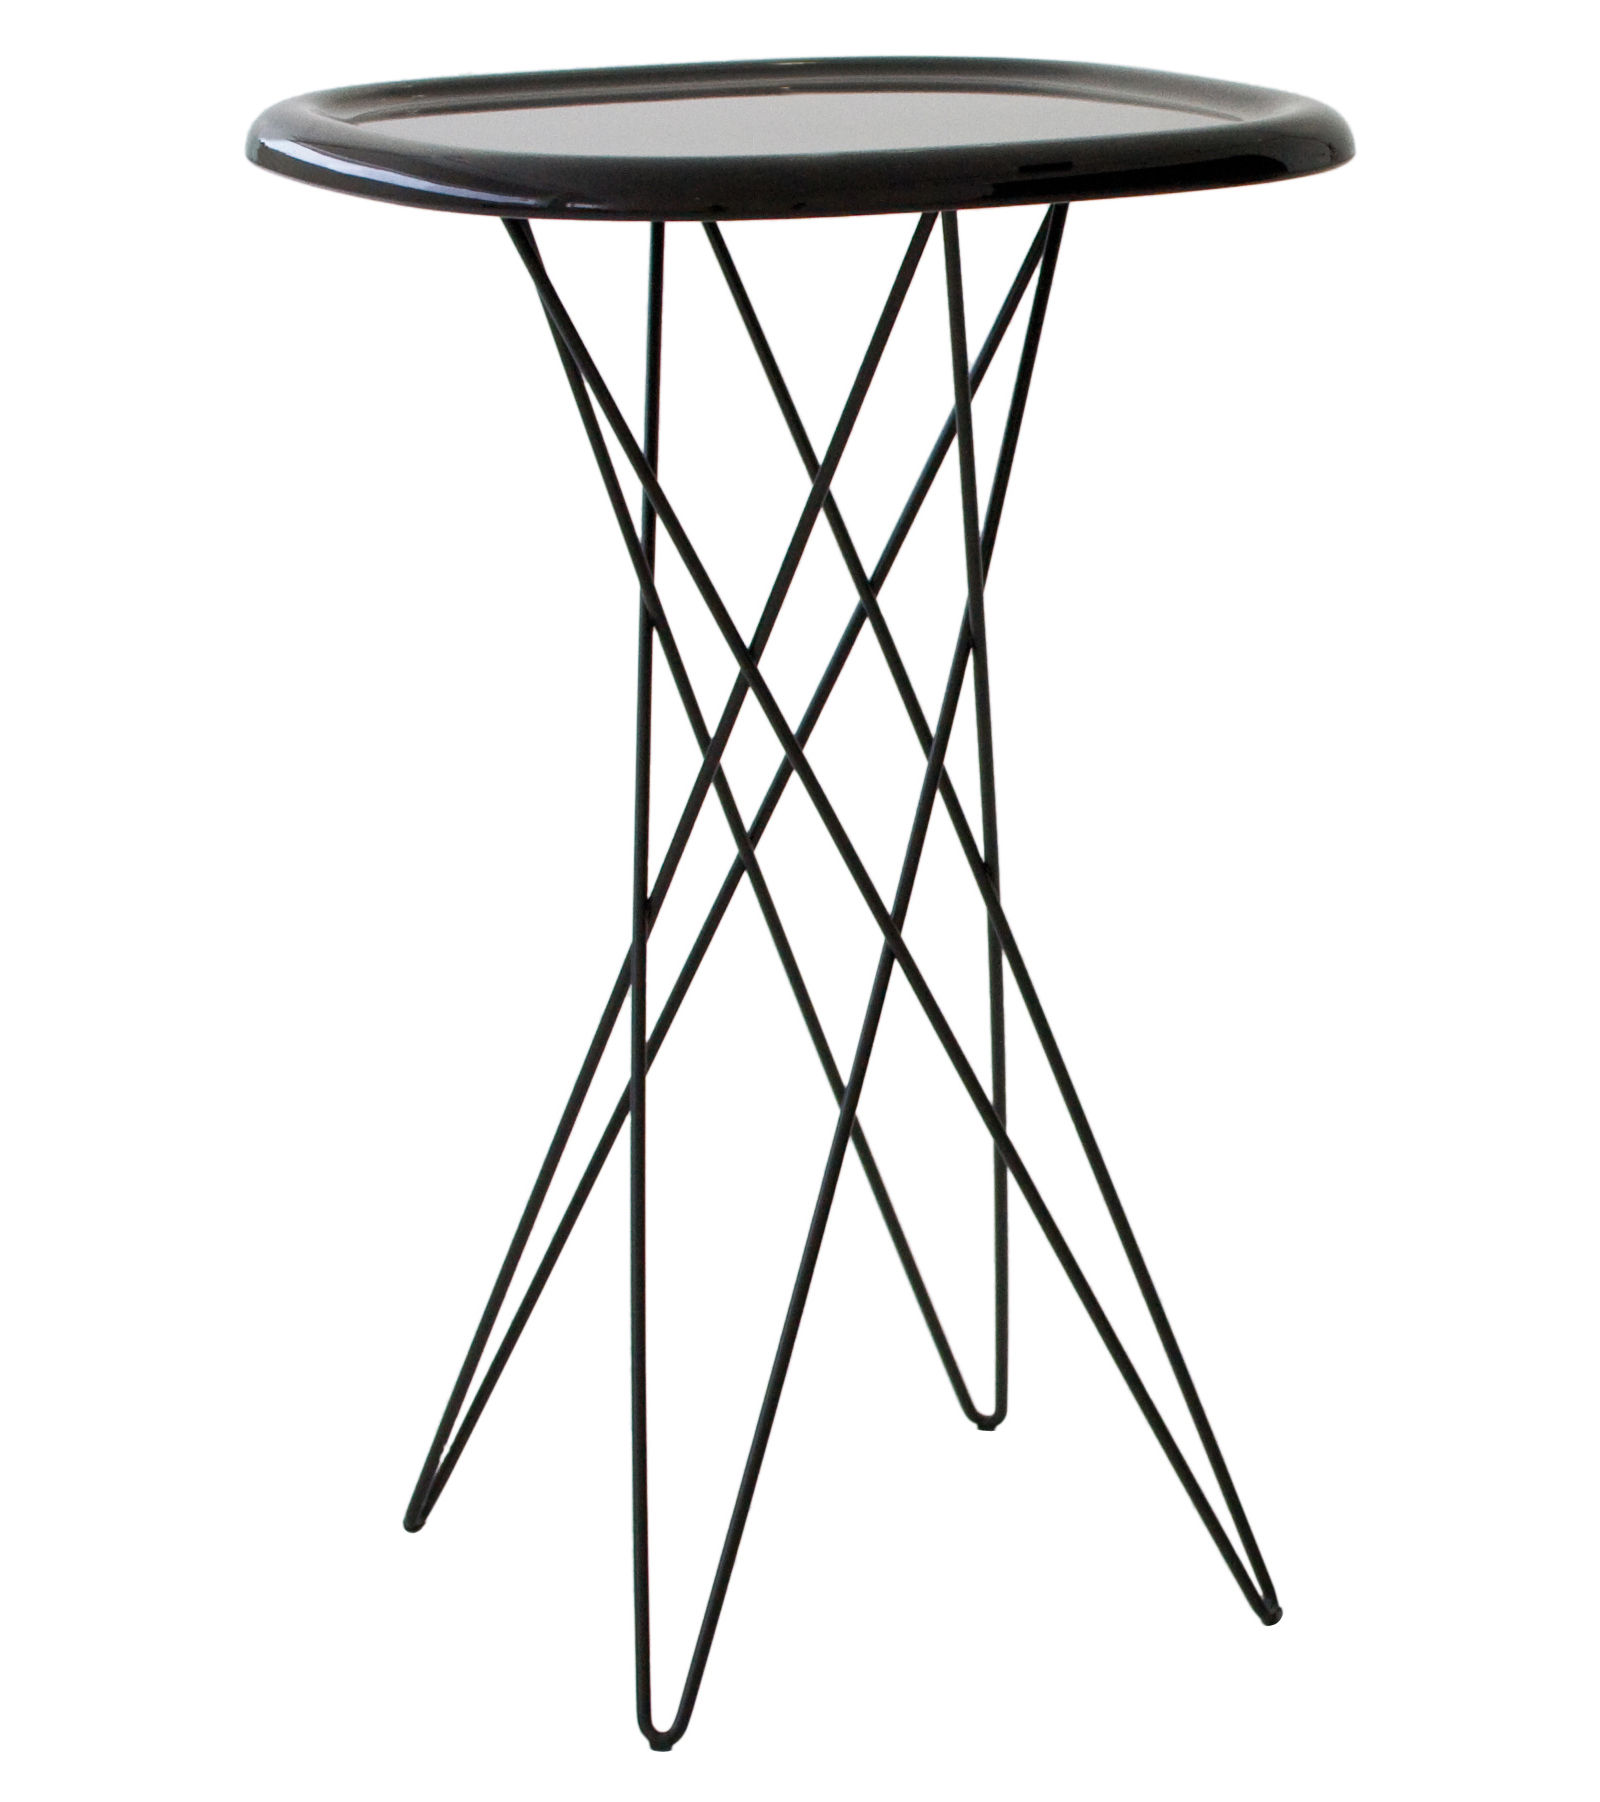 Furniture - Pizza End table - H 70 cm by Magis - H 70 cm - Brown - ABS, Varnished steel